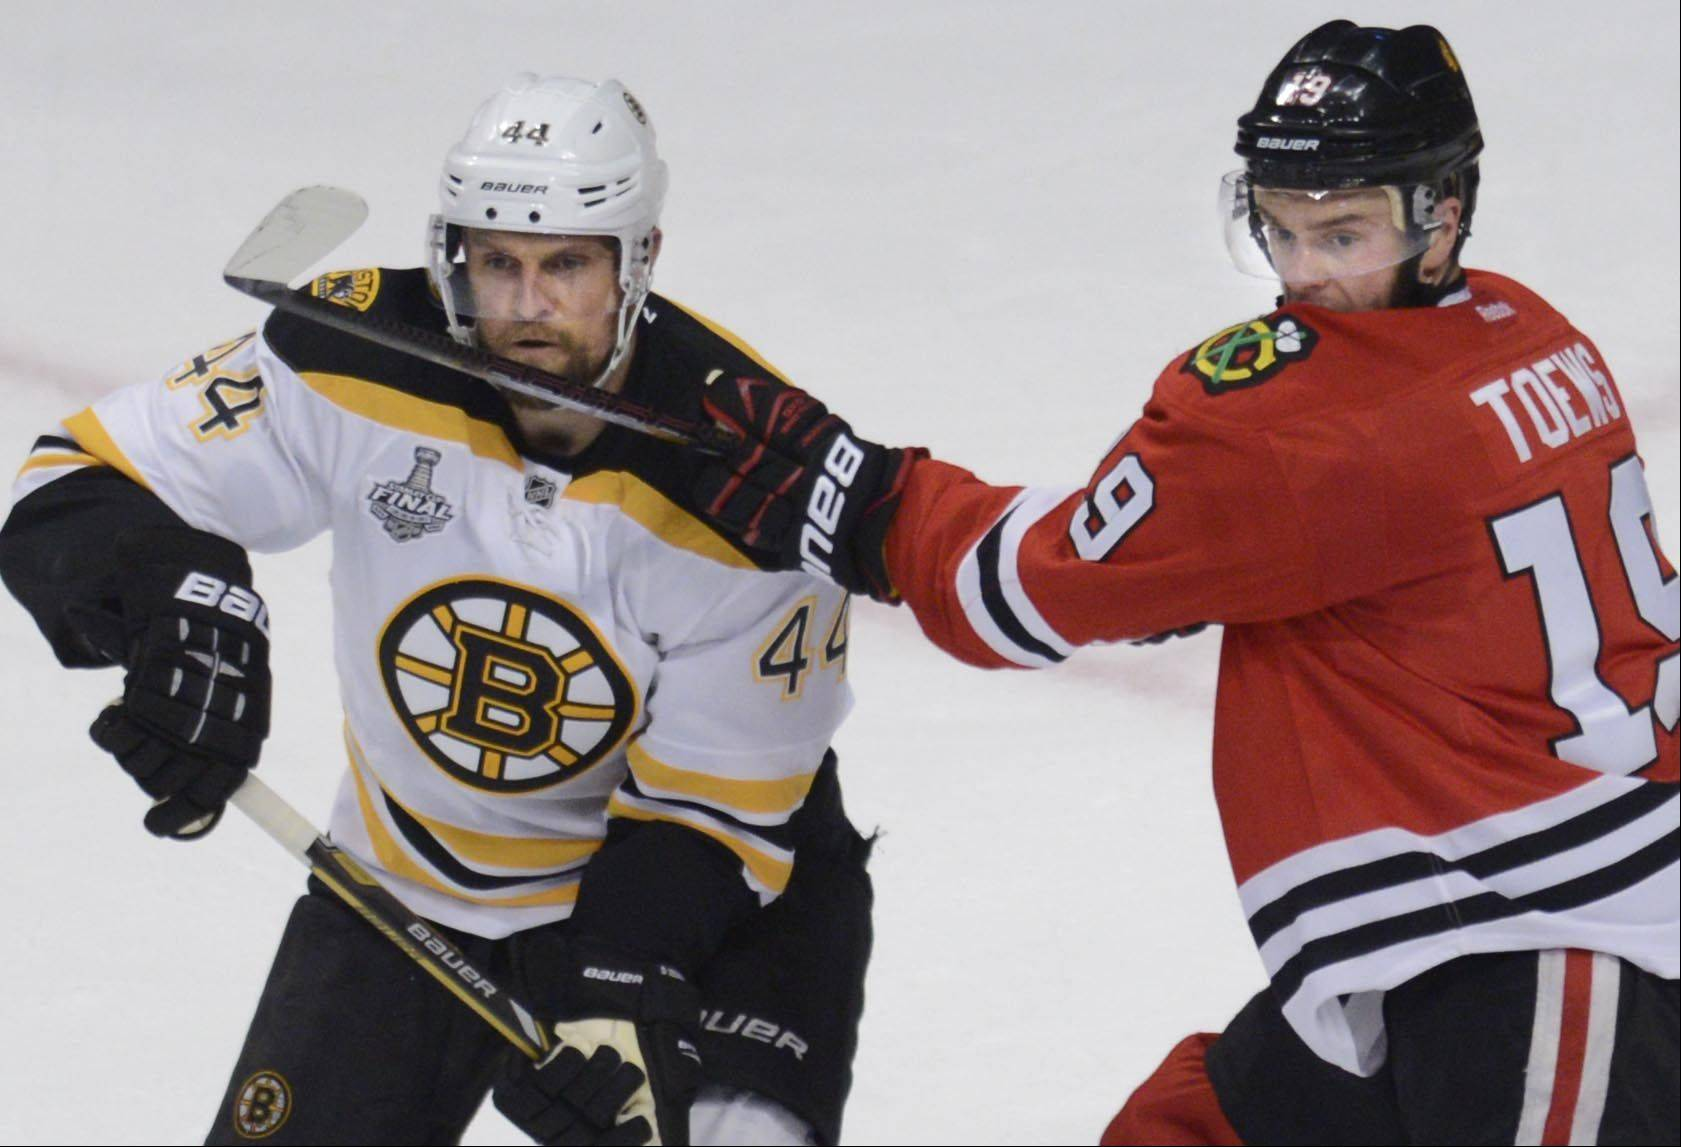 Chicago Blackhawks center Jonathan Toews battles with Boston Bruins defenseman Dennis Seidenberg in front of the net.